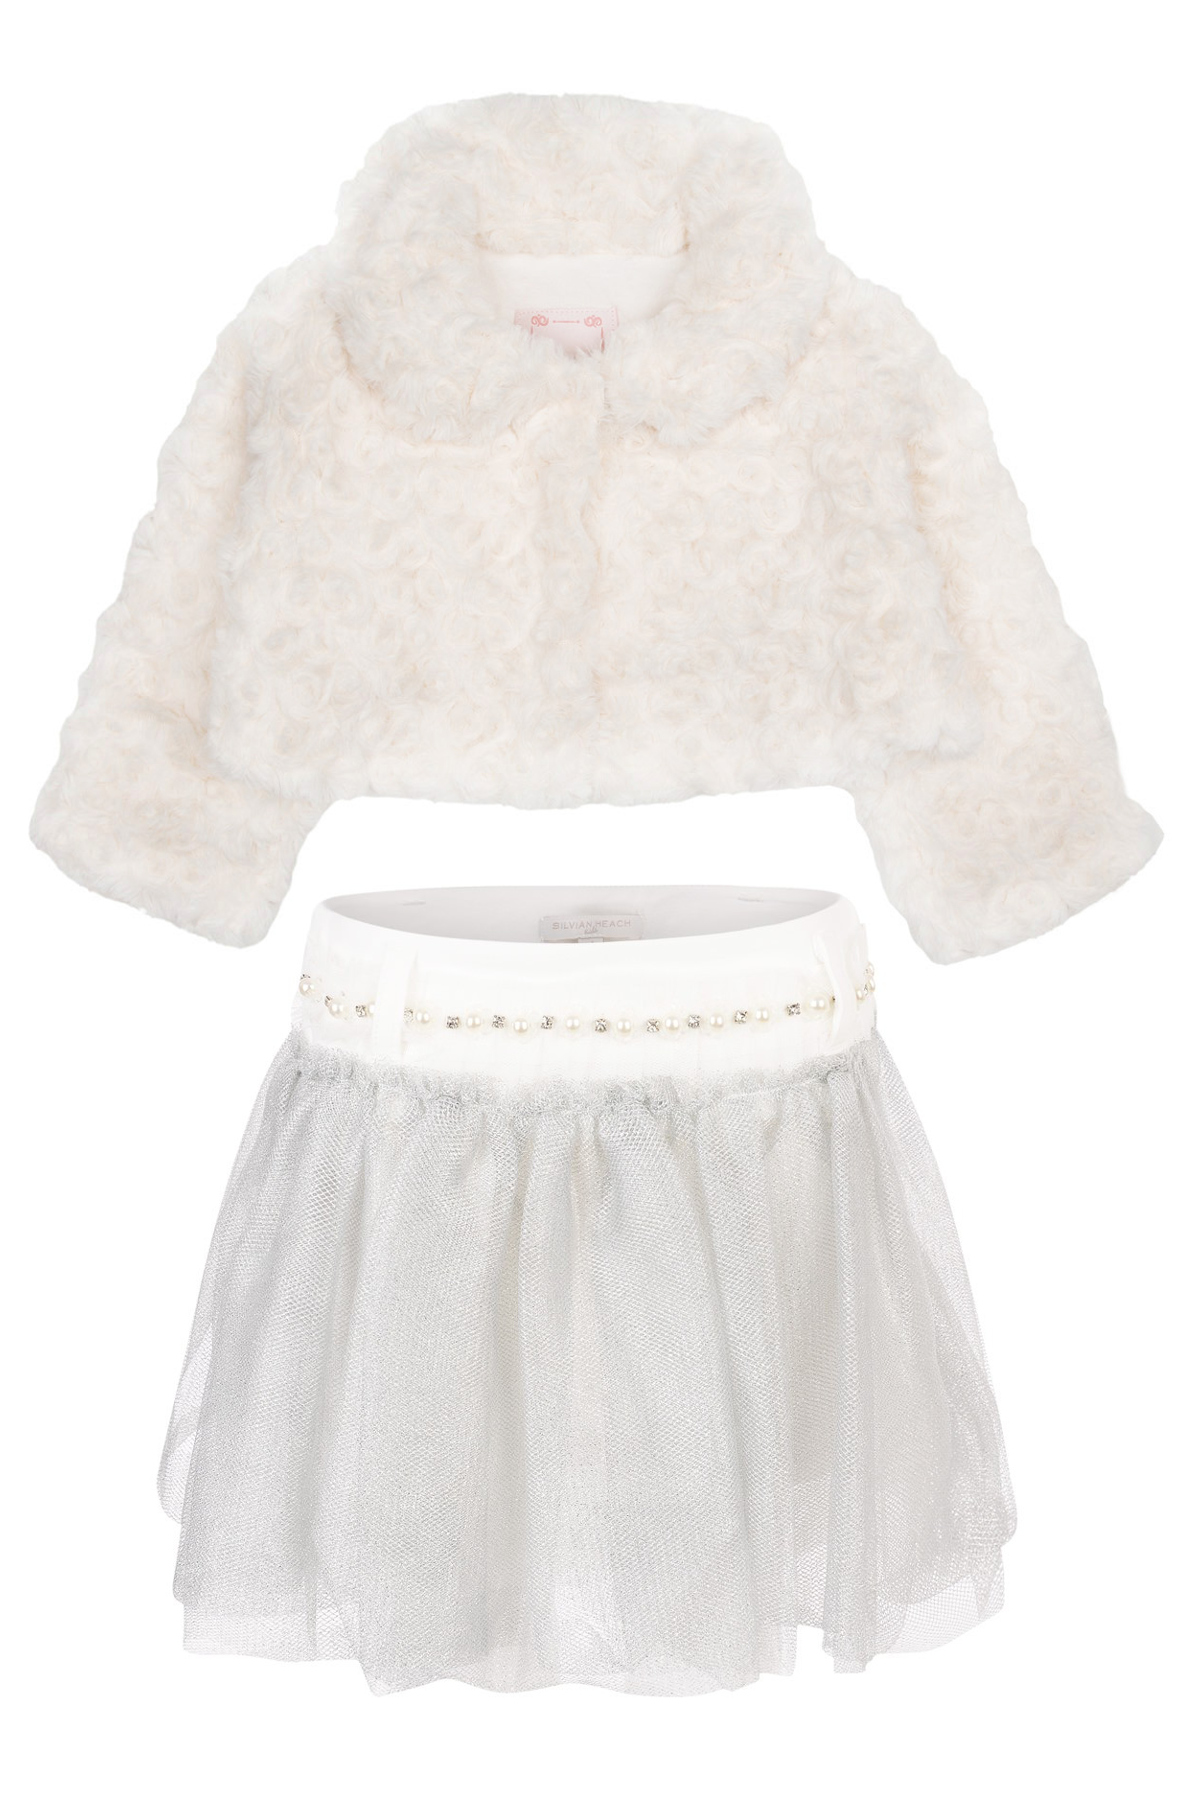 Silvian Heach Kids winter 2014 white fur and grey tulle skirt